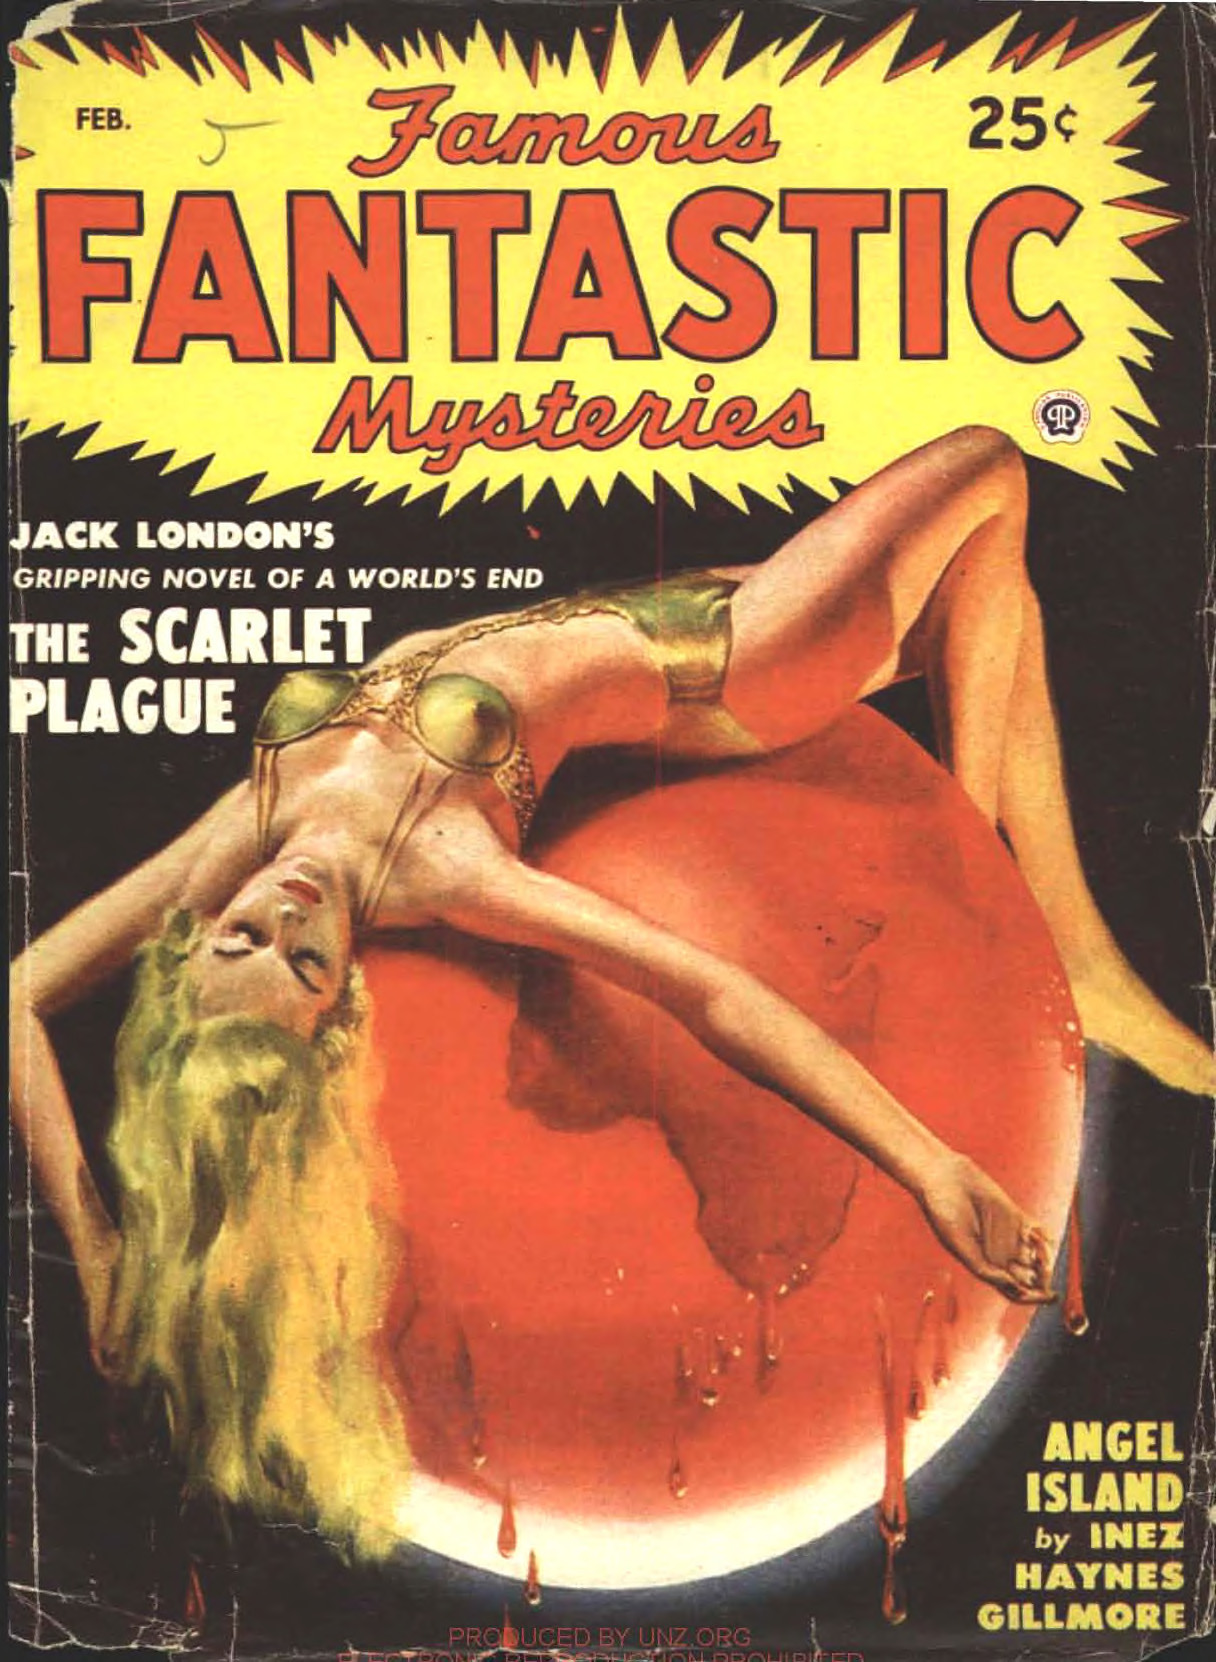 """A sexy woman draped over a scarlet planet earth, illustrating Jack London's story """"The Scarlet Plague"""" and executed by Lawrence Sterne Stevens."""